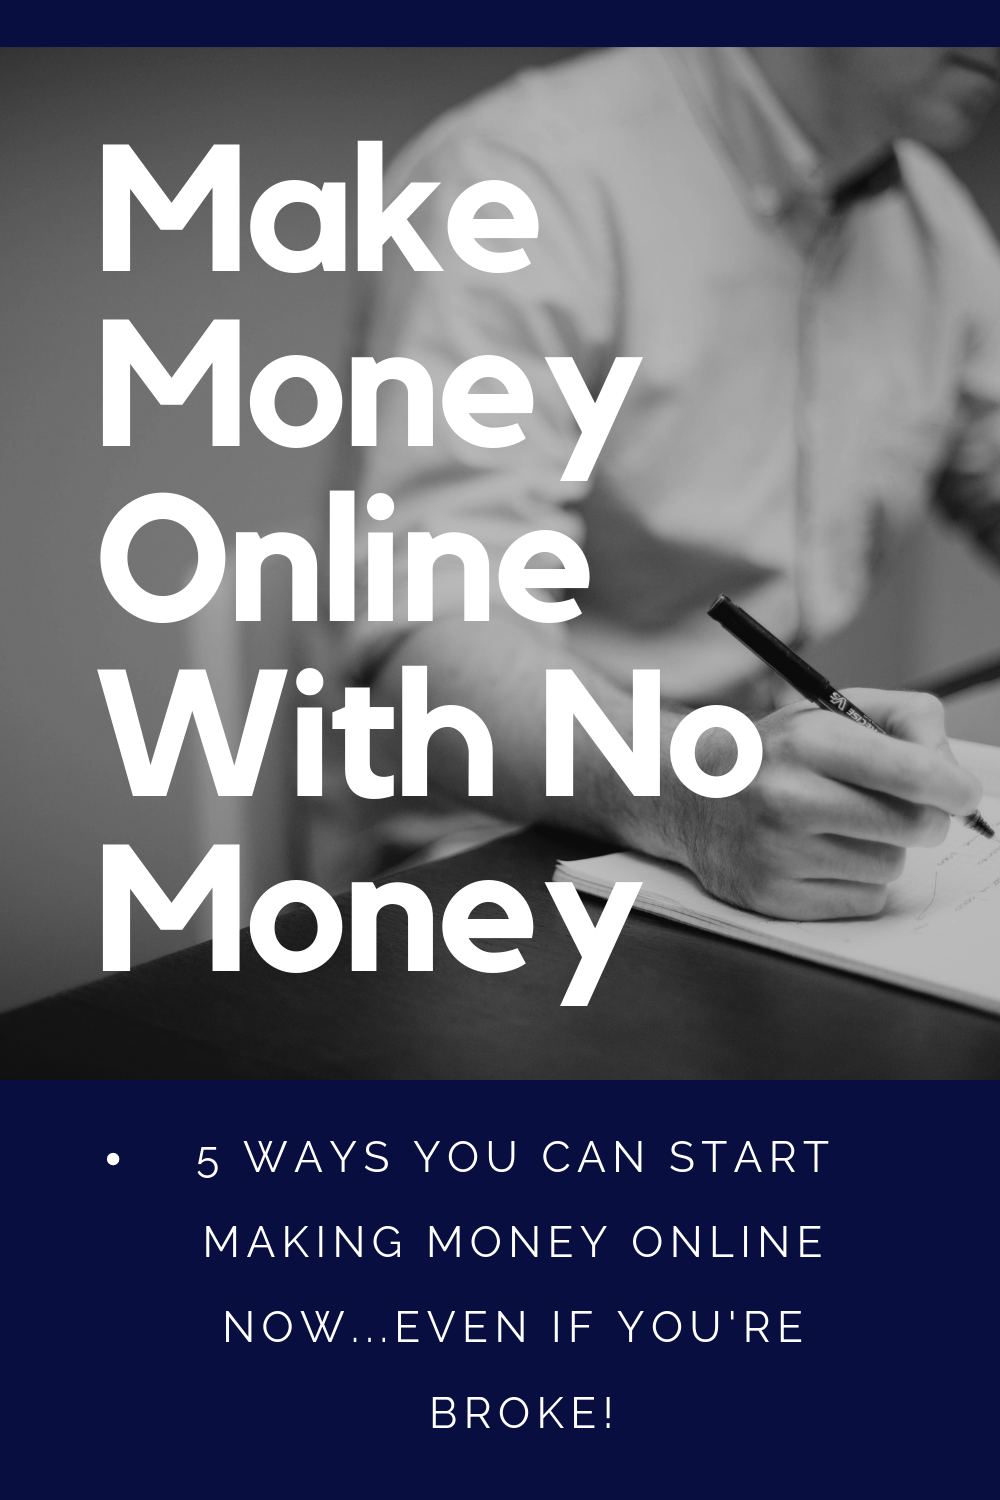 How To Make Money Online With No Money Top 5 Ways To